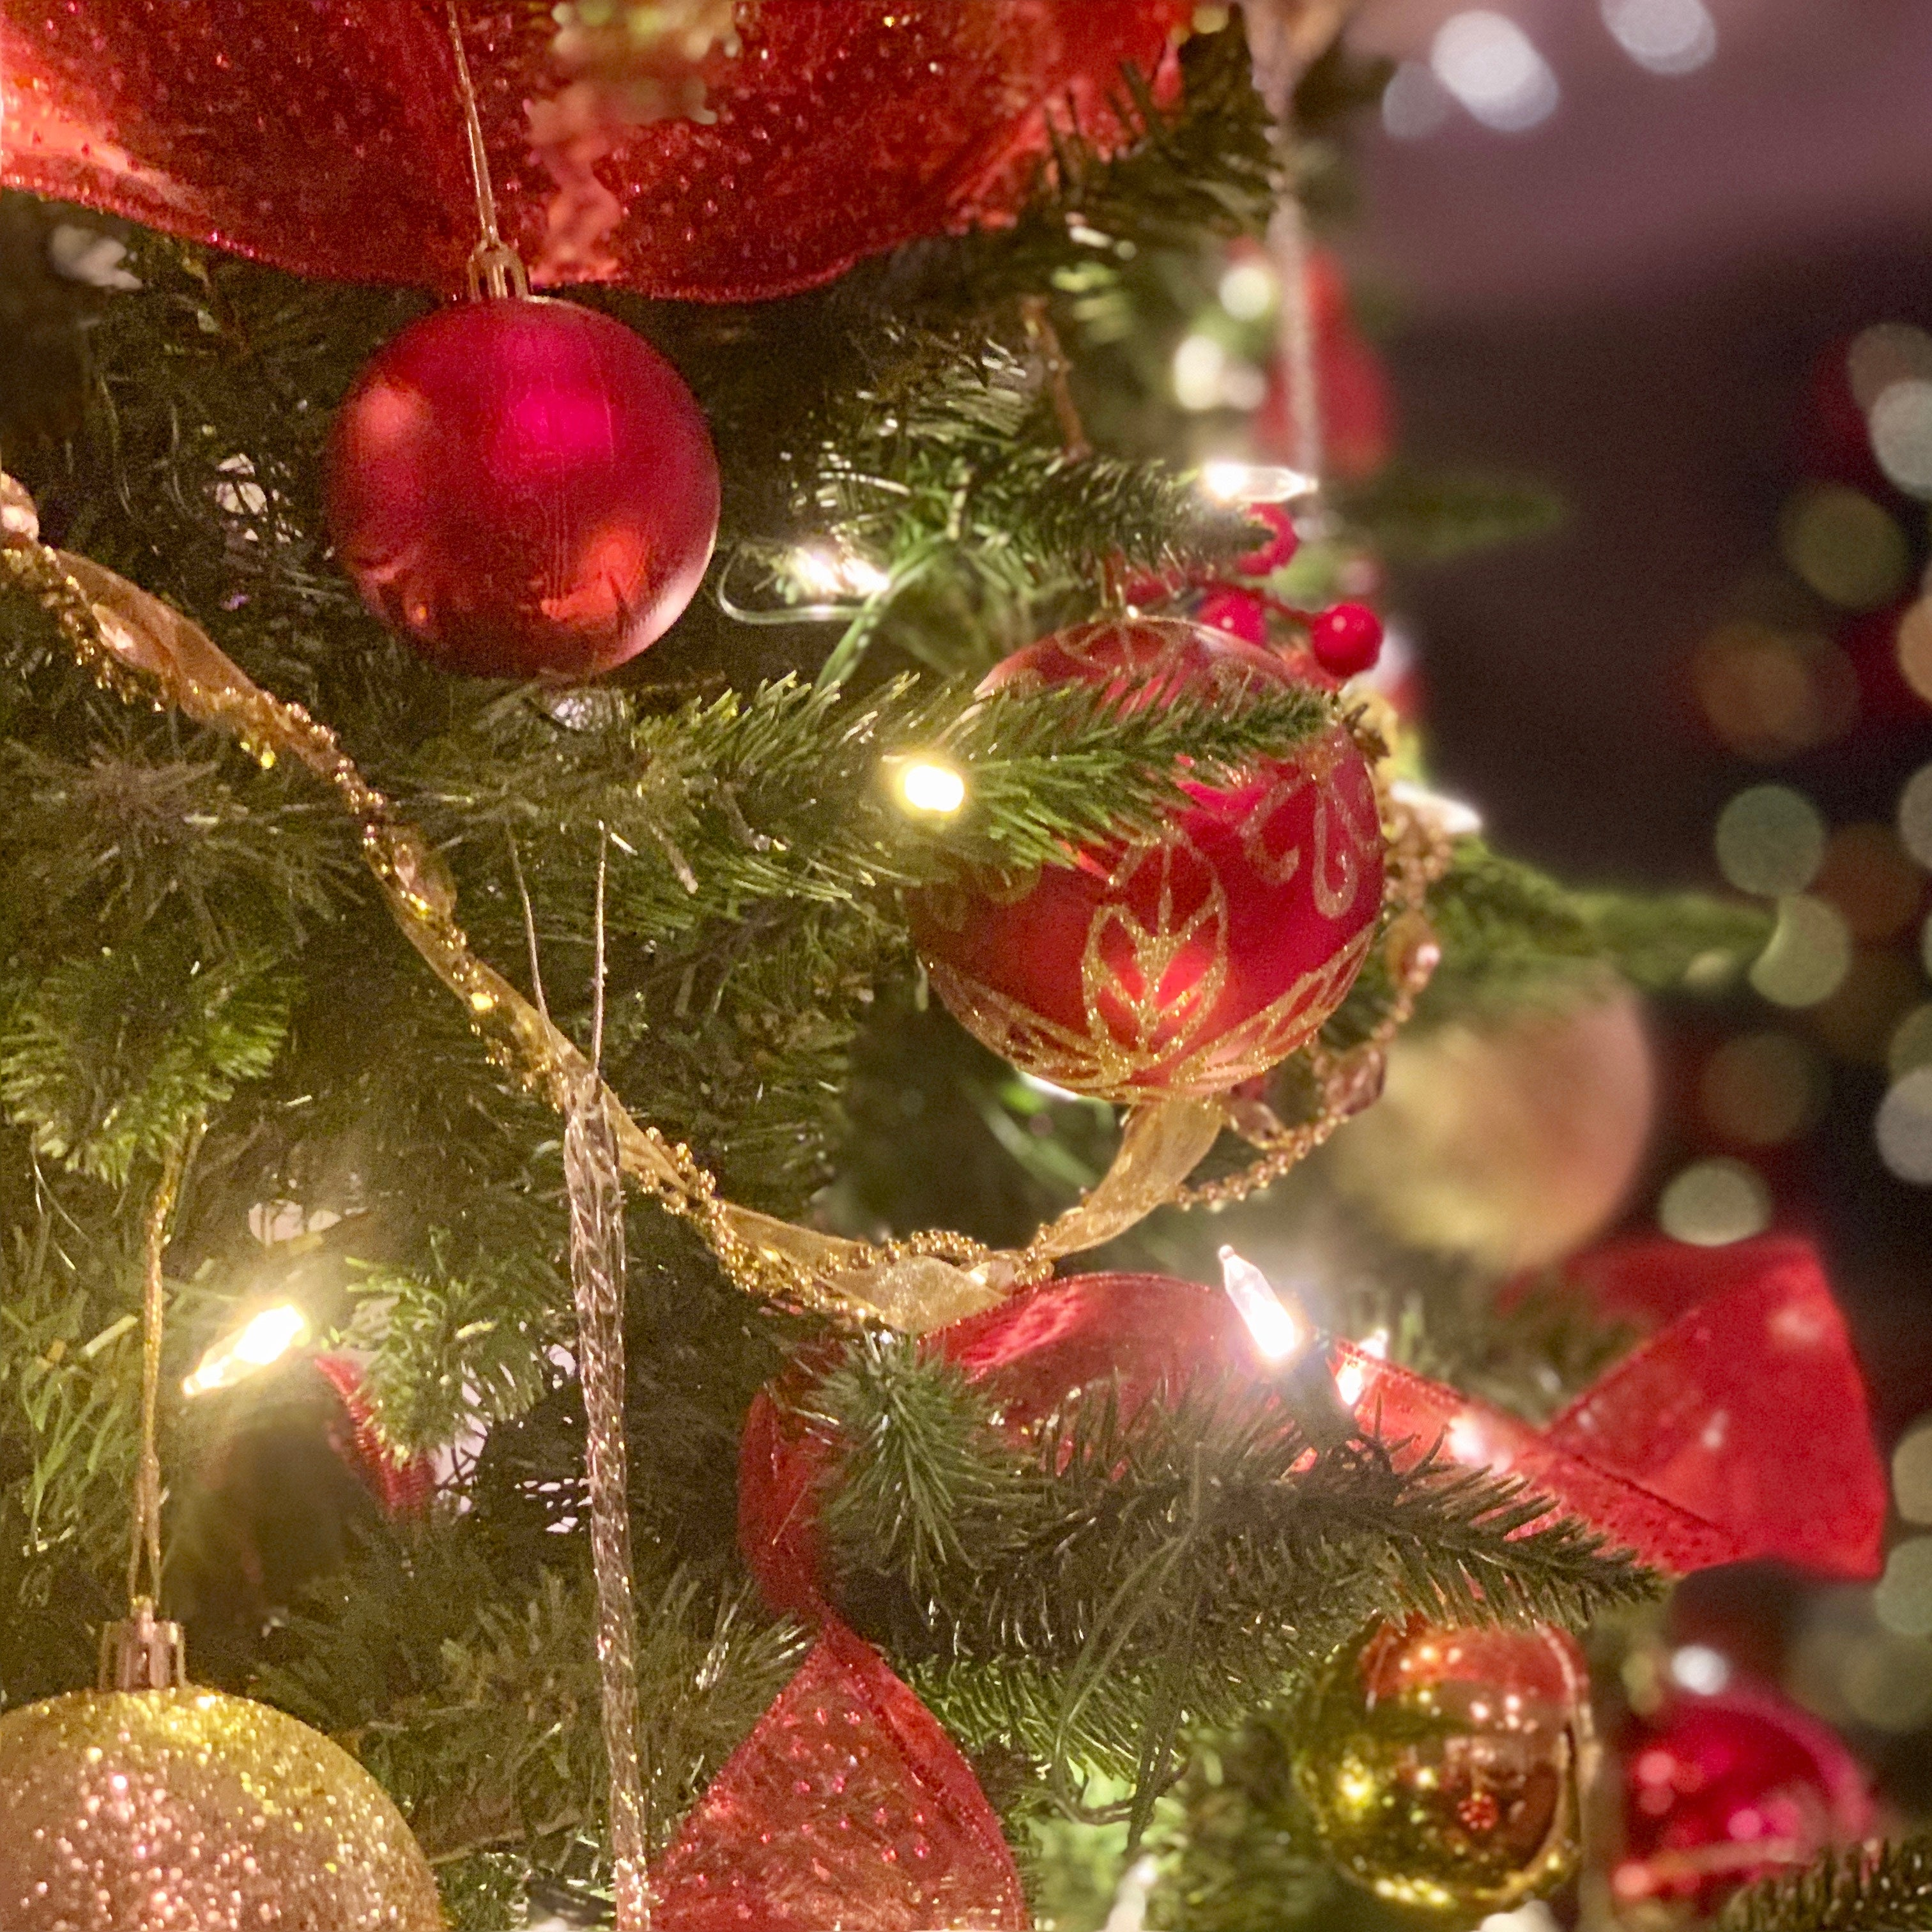 Close-up of decorated artificial Christmas tree